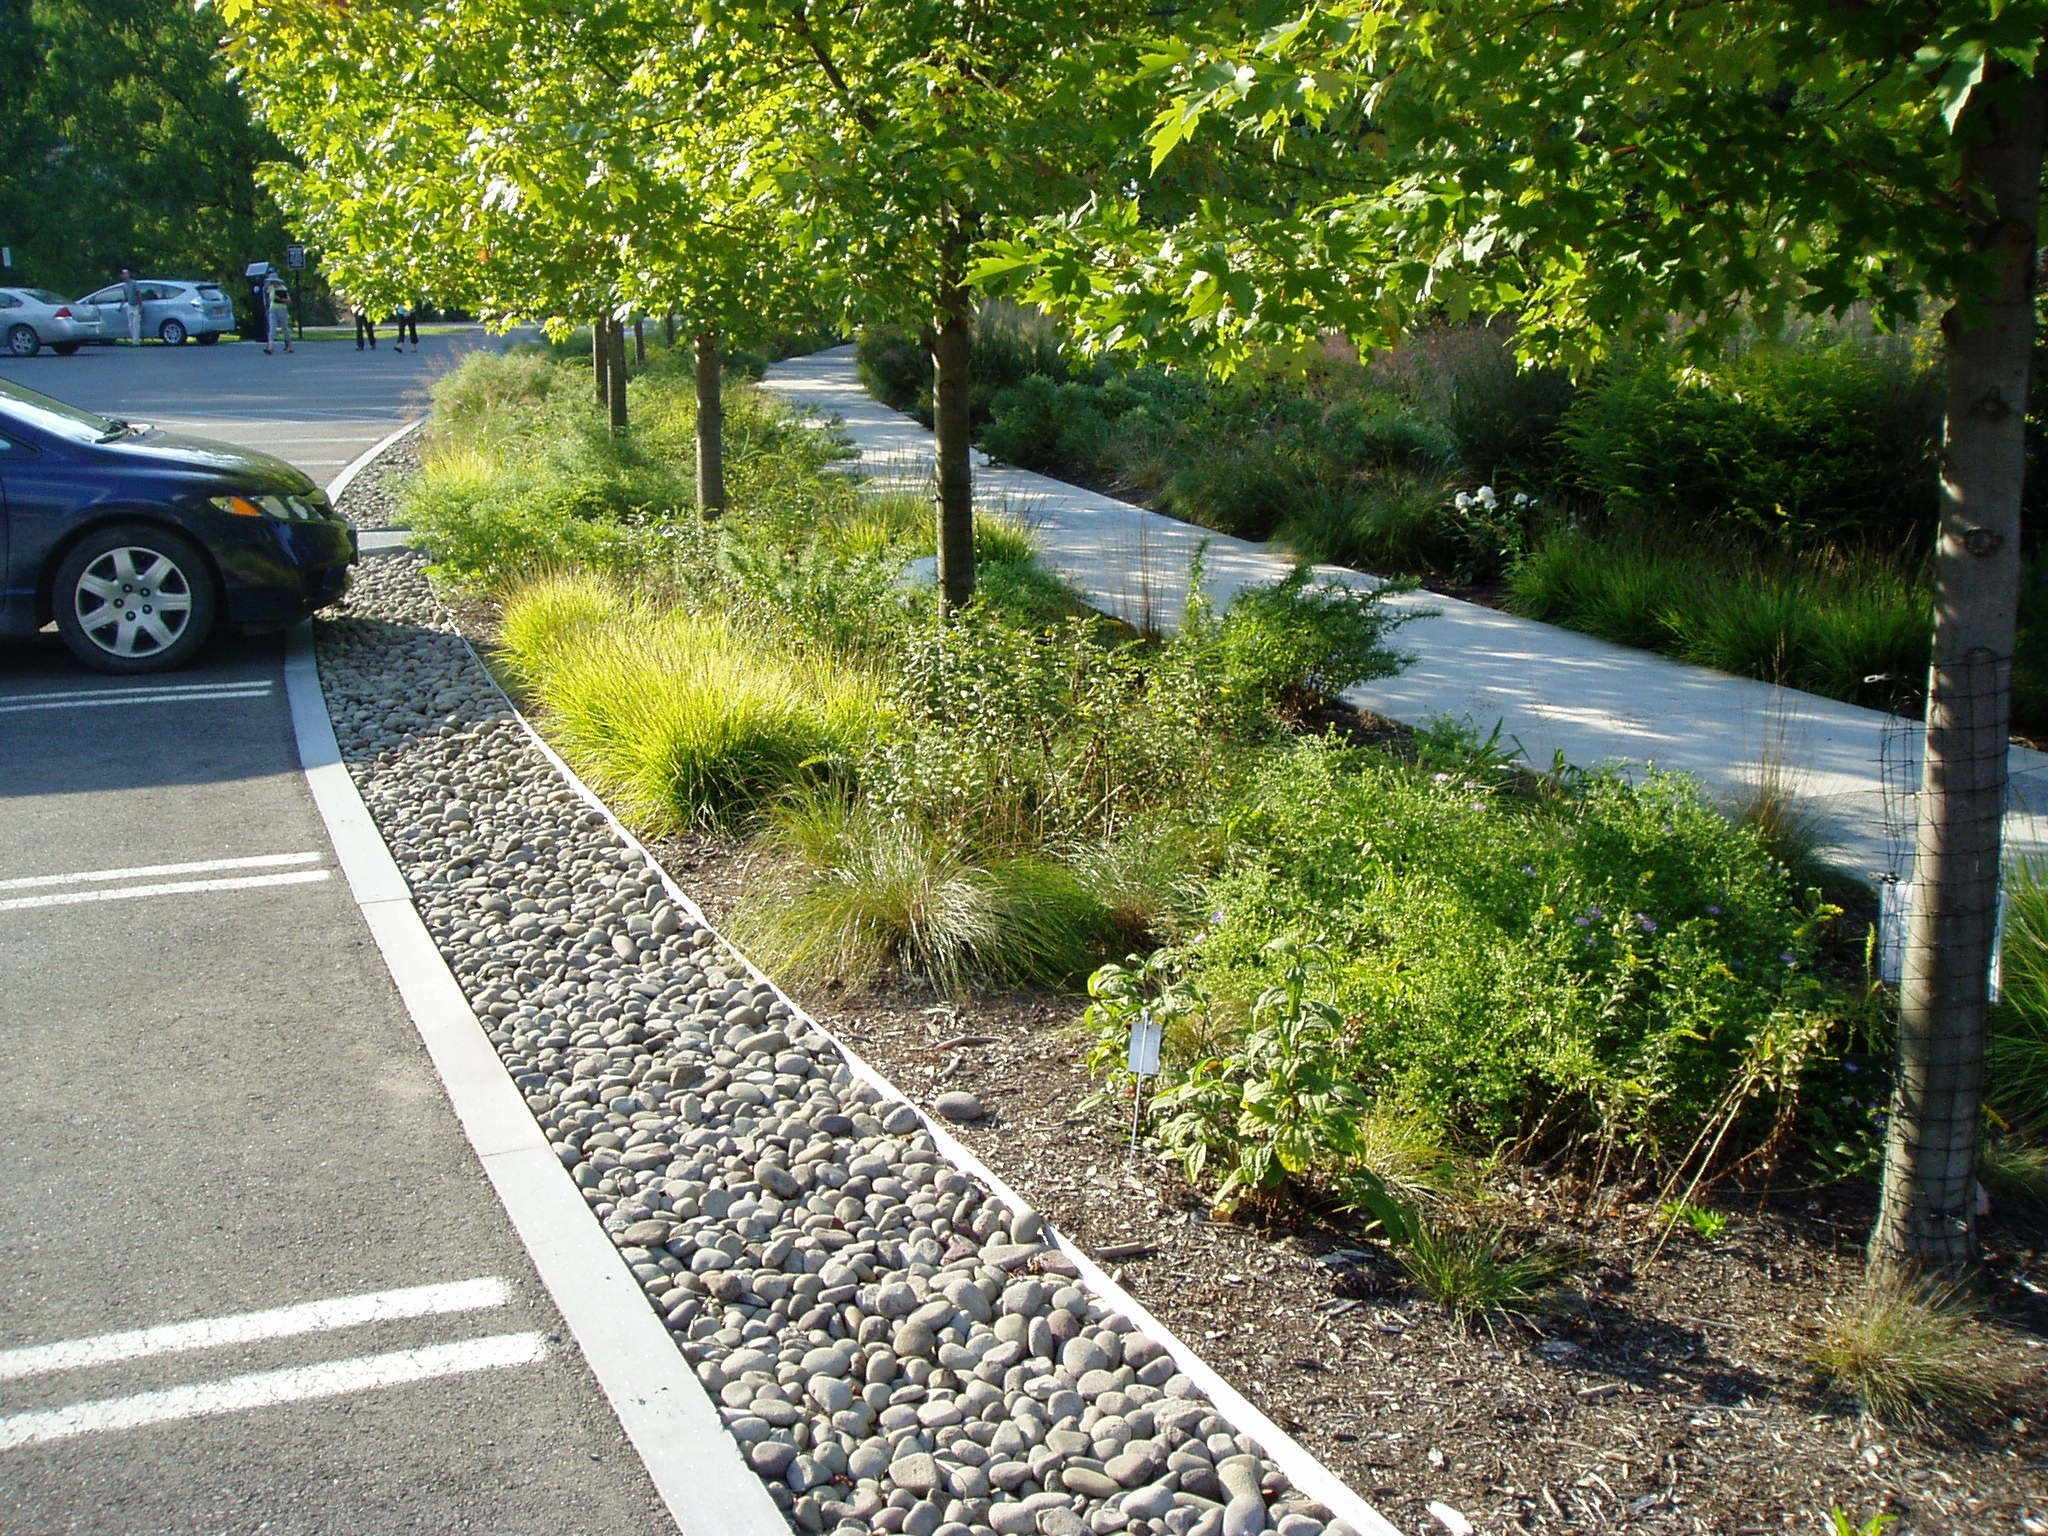 Cornell plantations bioswale estacionamento pinterest for Surface design landscape